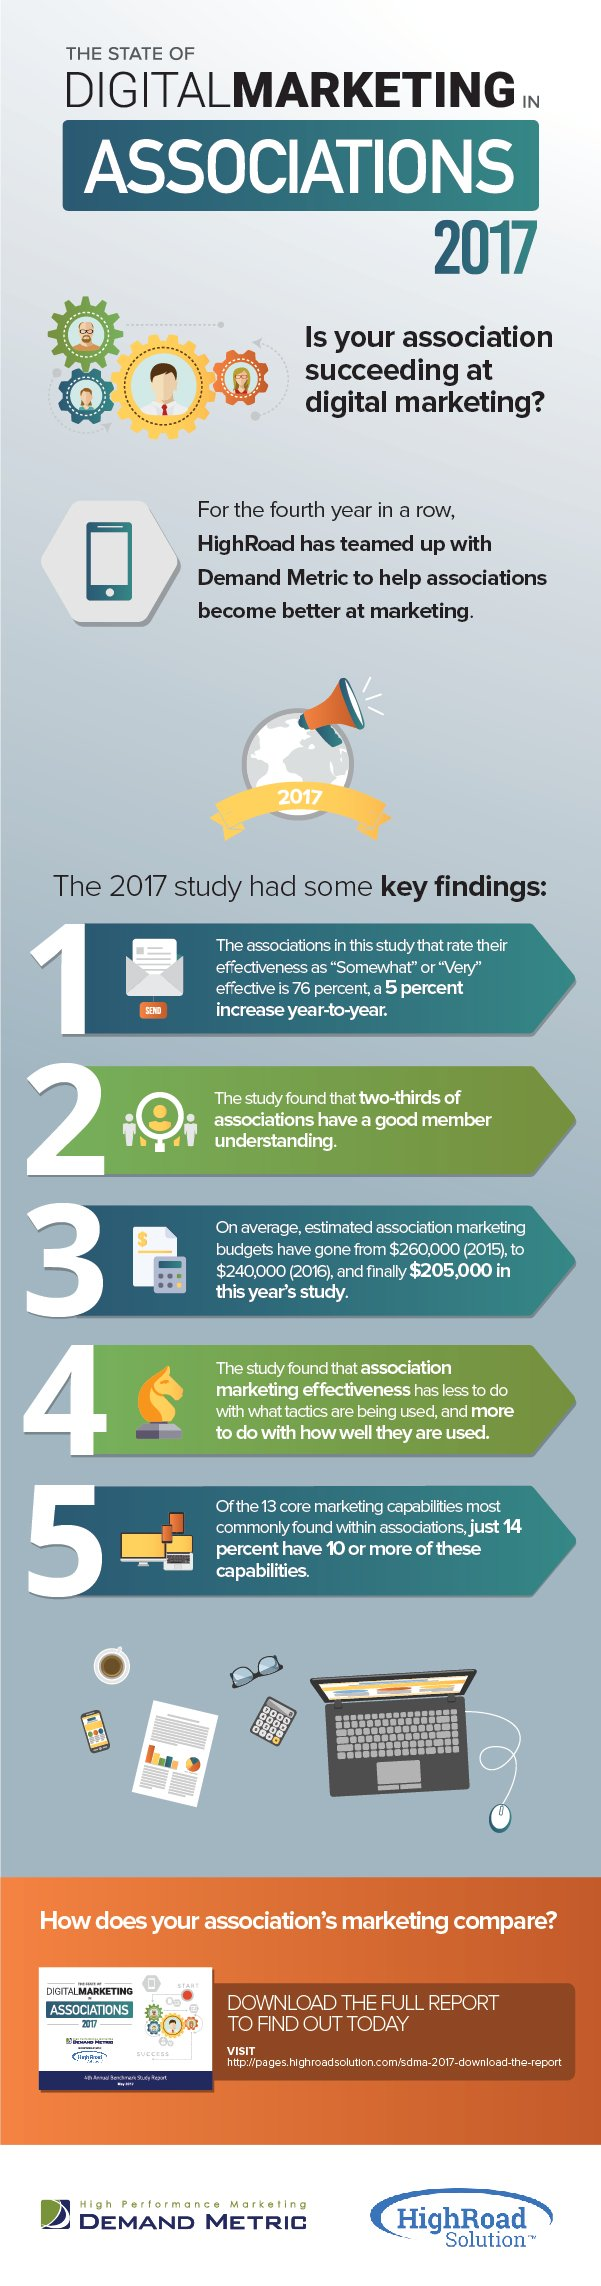 The 2017 State Of Digital Marketing-5 Key Findings